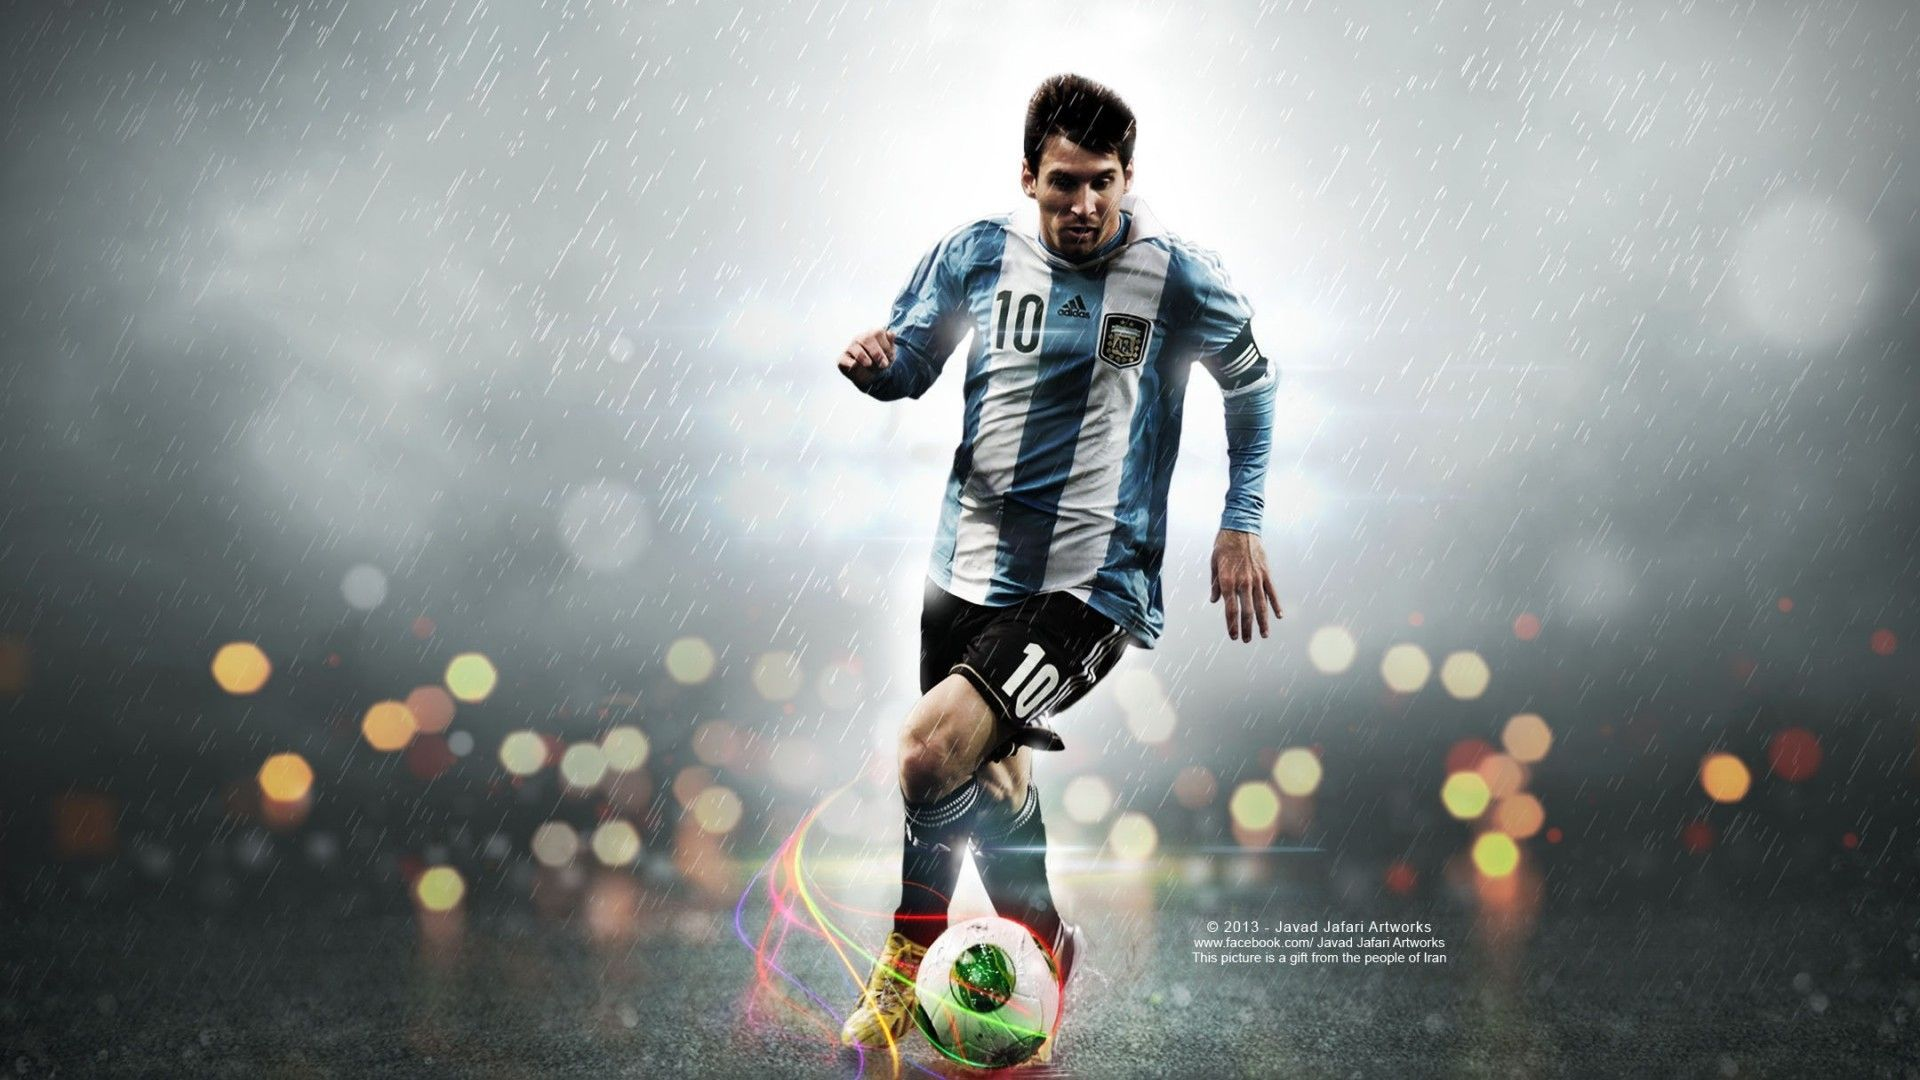 Awesome Football Wallpaper Pictures In Hd For Download 1920 1200 Football Players Wallpapers 51 Wa Lionel Messi Wallpapers Lionel Messi Lionel Messi Barcelona